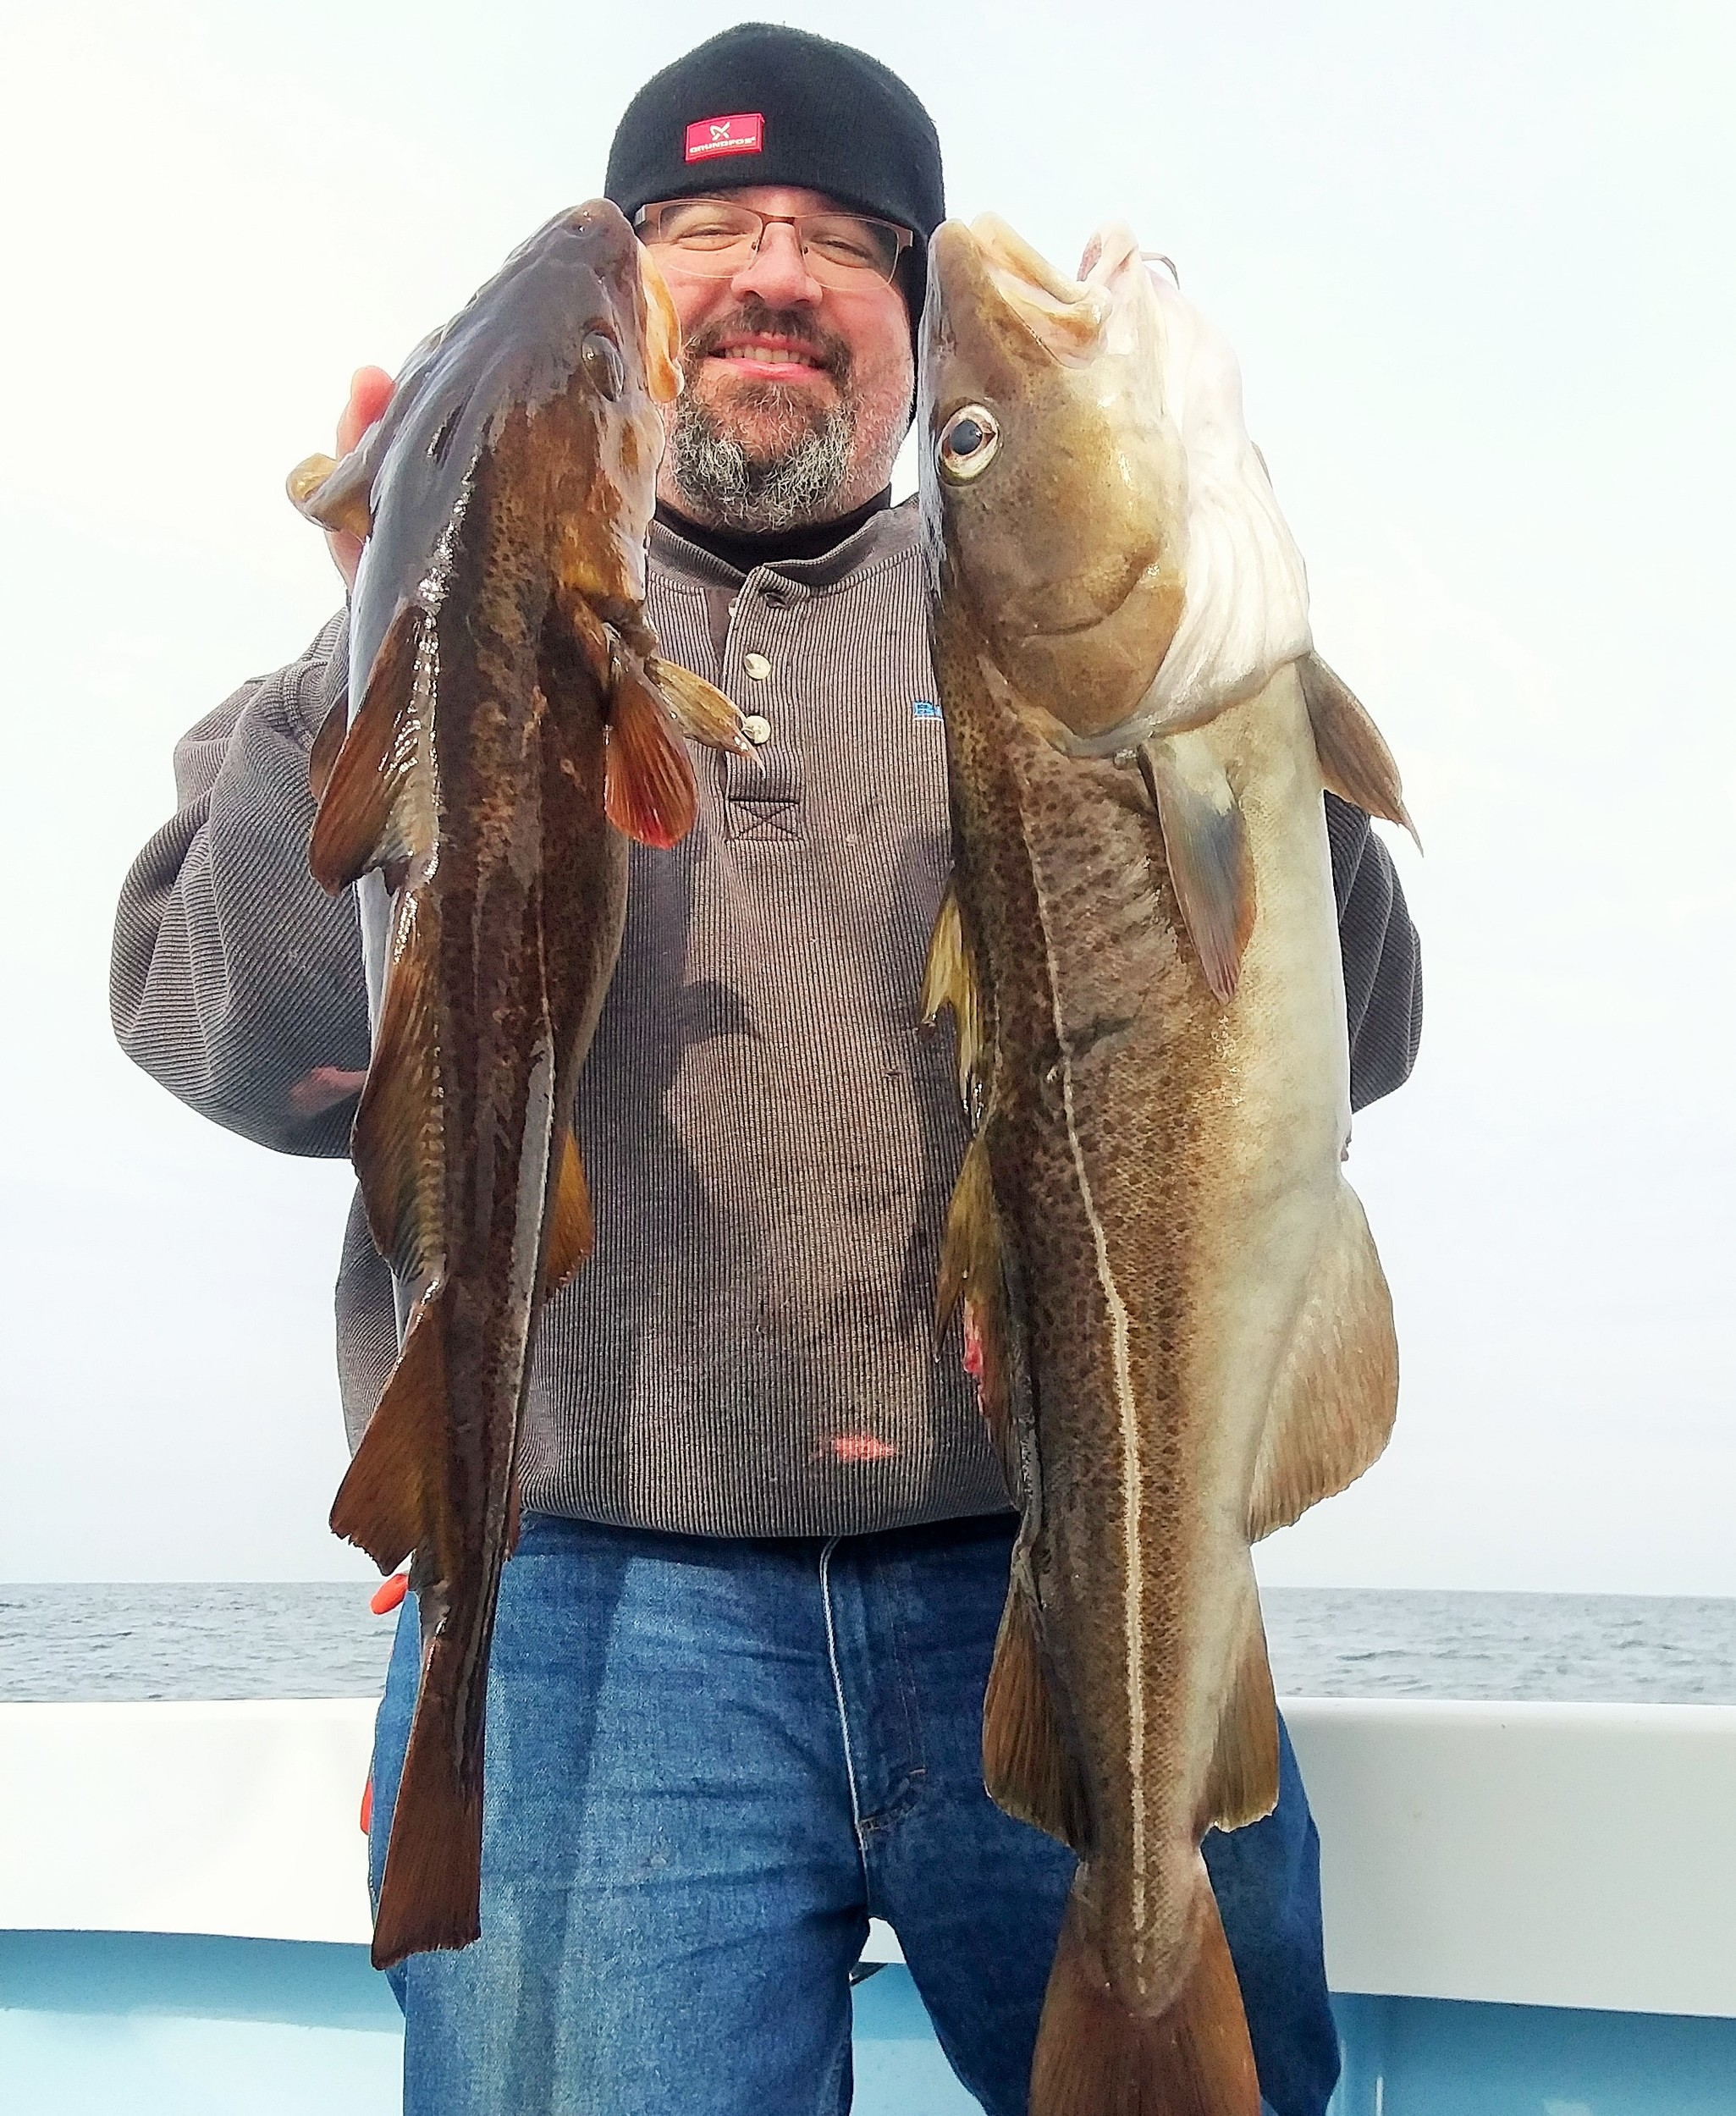 Jim Stevens of Warwick with two cod fish caught with hi/lo cod fishing rigs using fresh sea clams as bait.